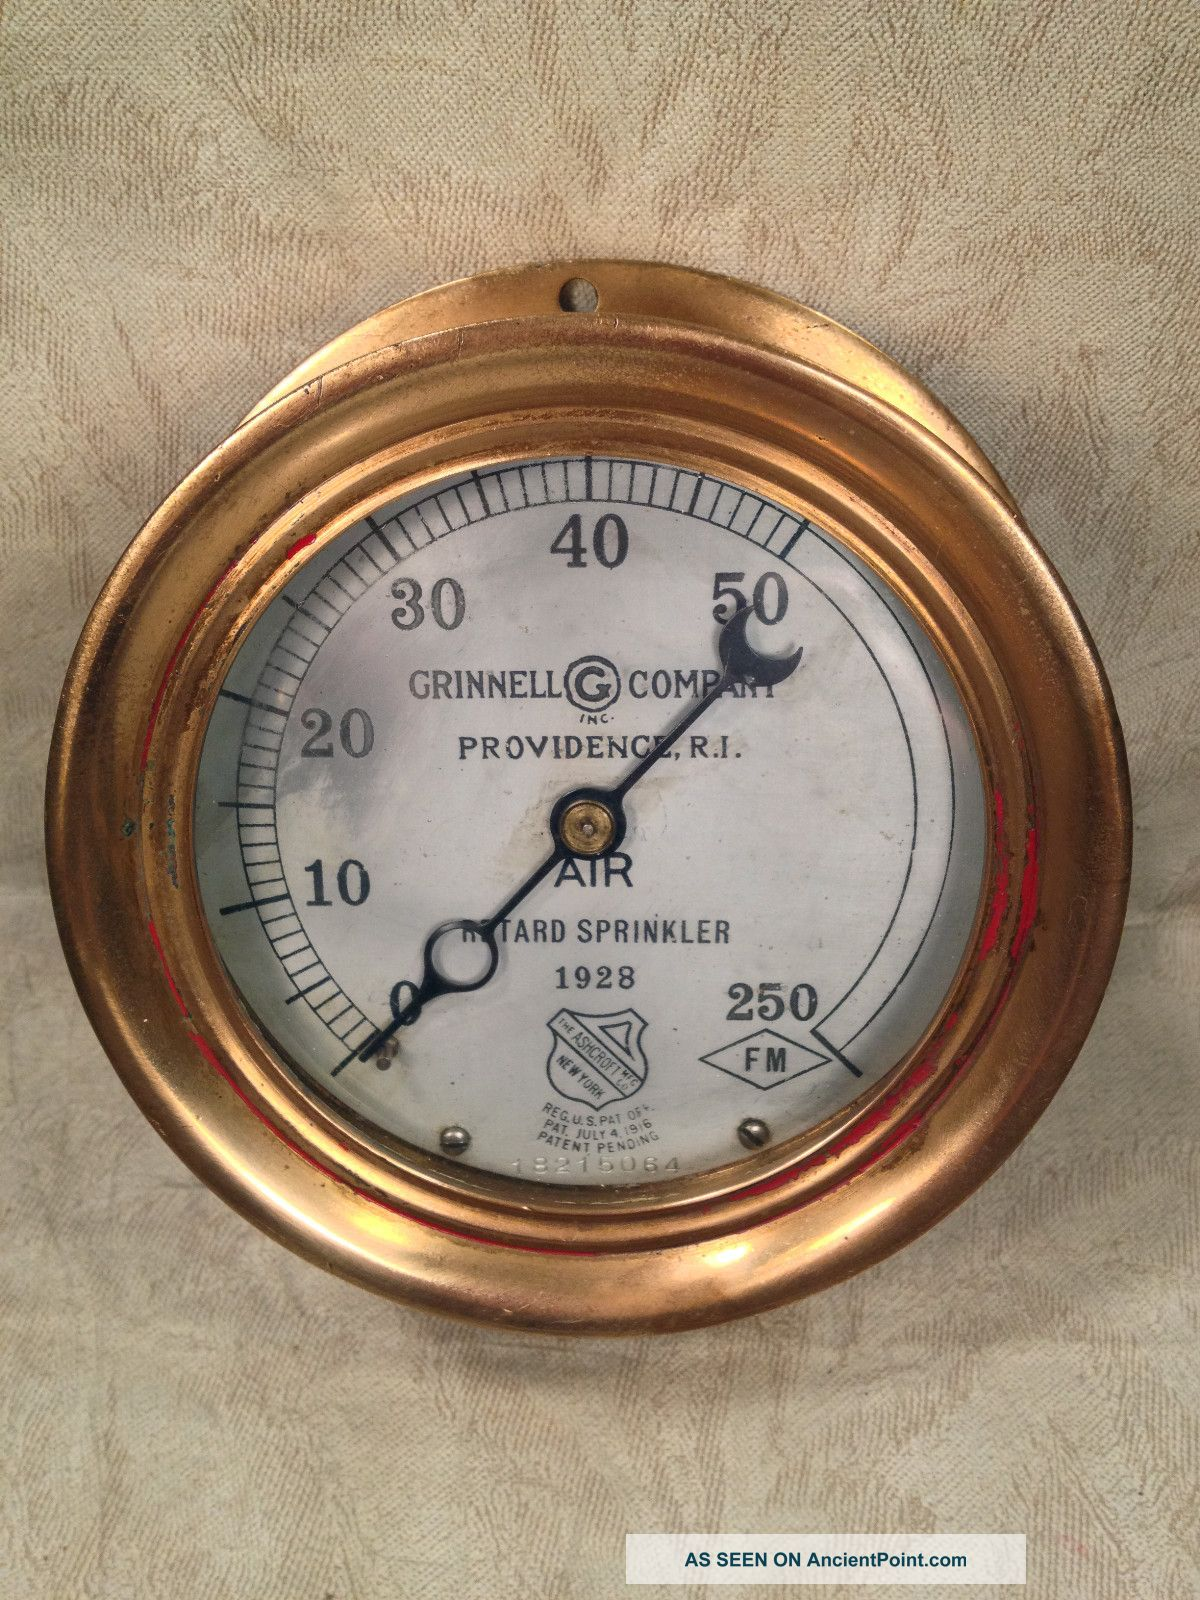 Antique All Brass Case Grinnell Co Pressure Gauge Providence Ri Reg July 1916 Other photo